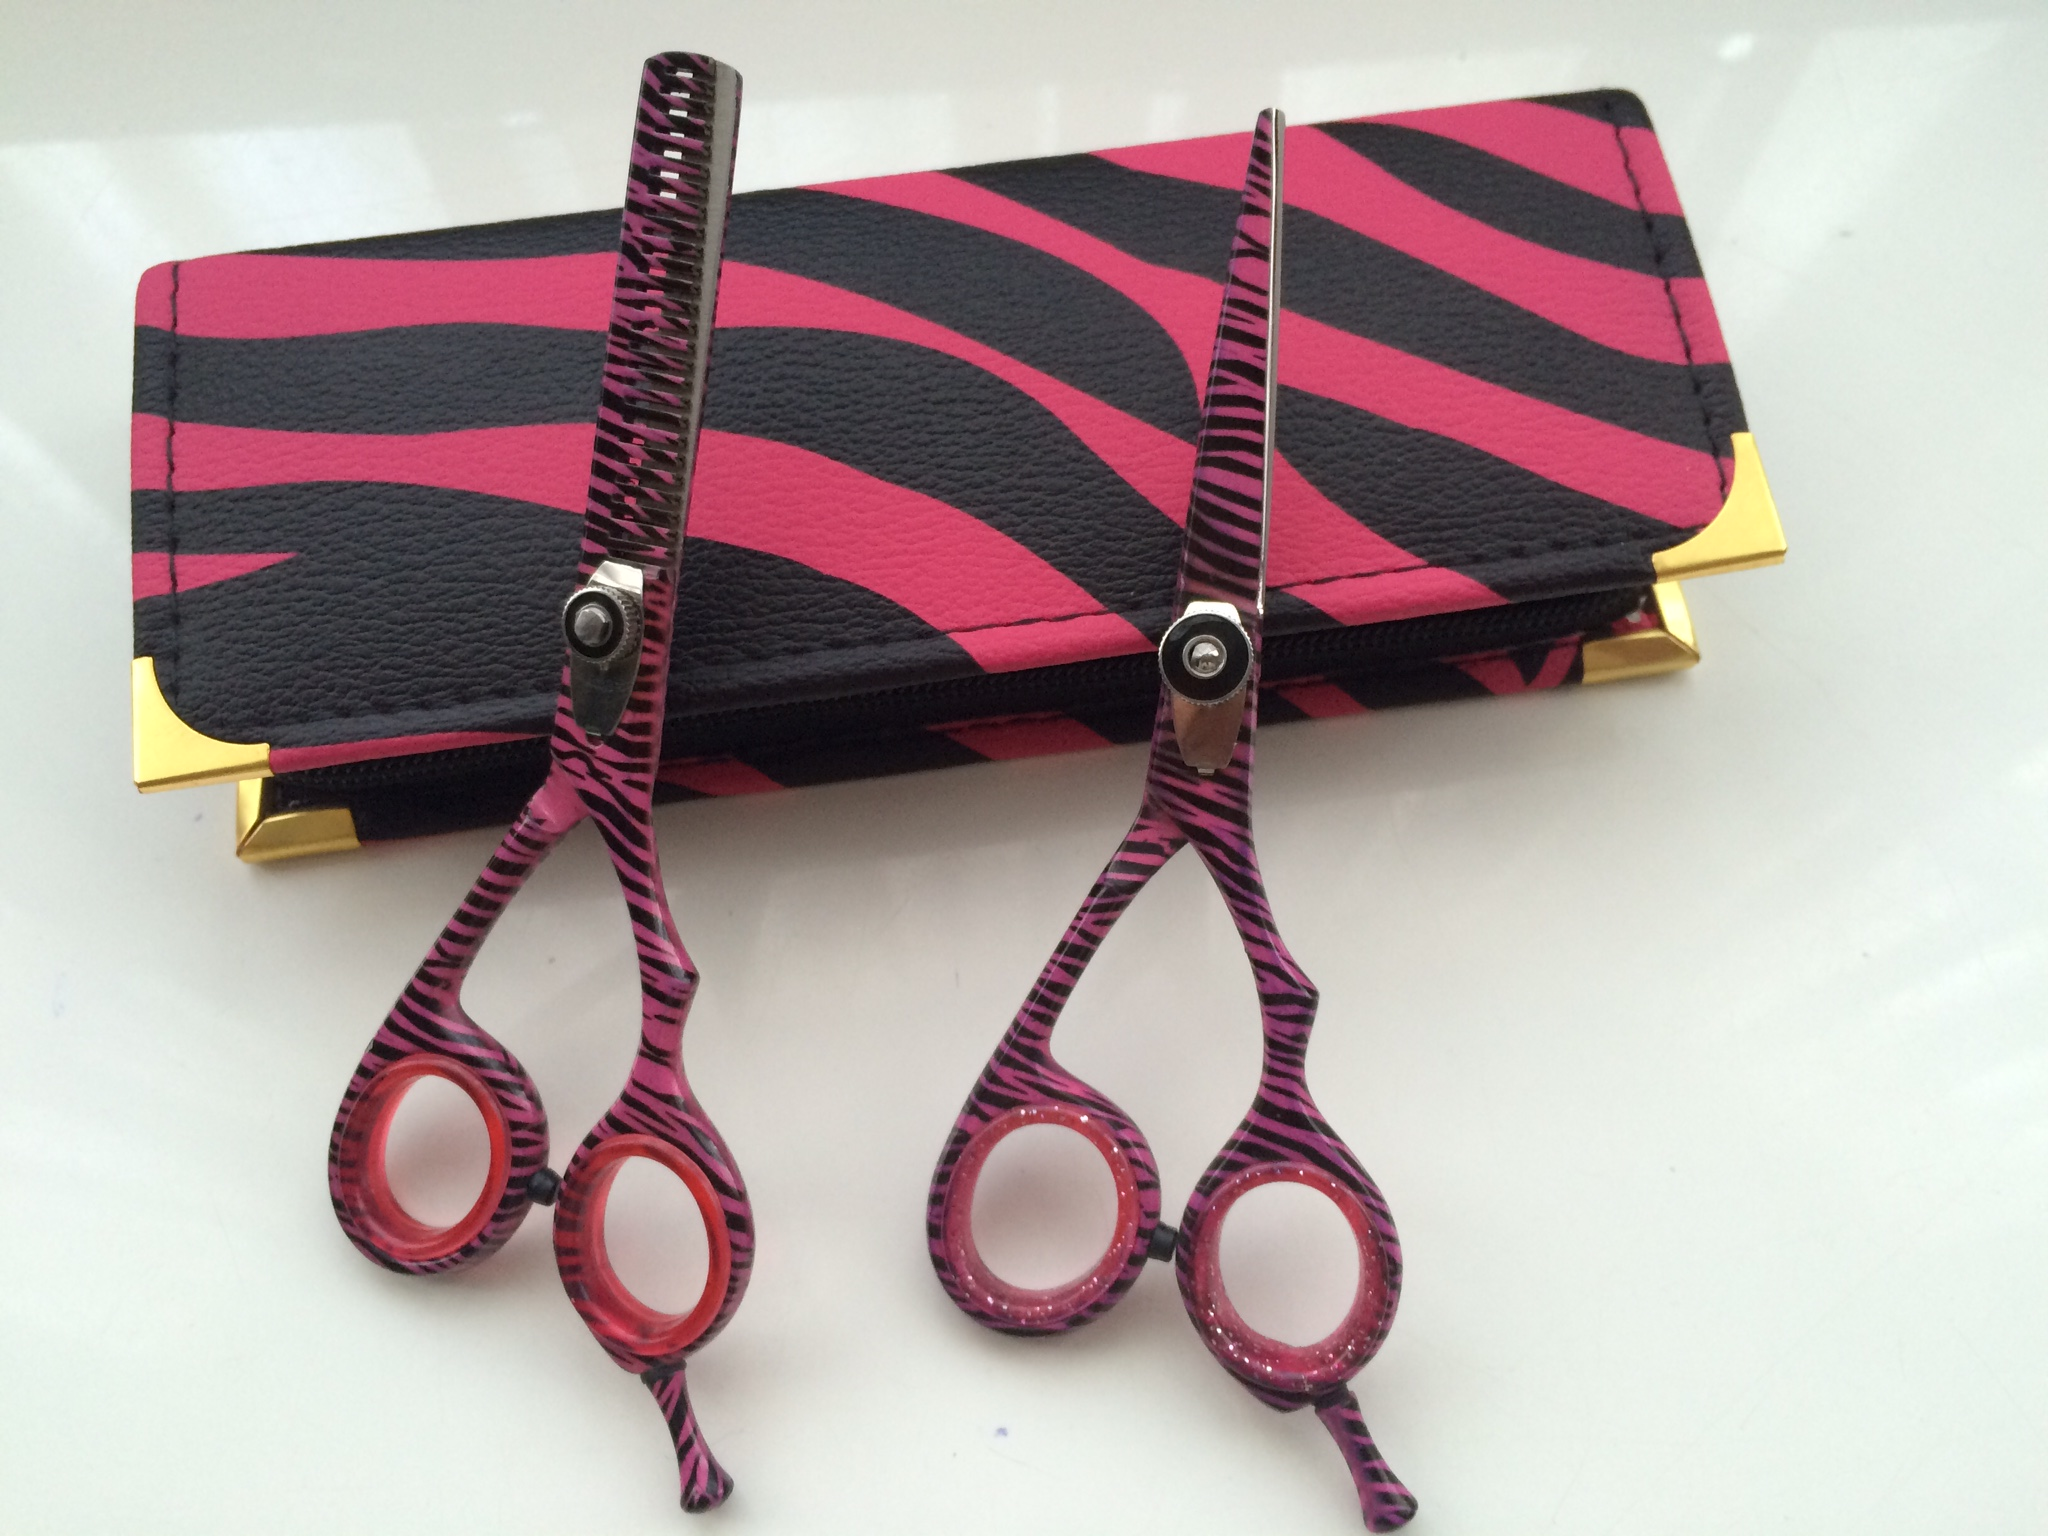 hair dressing scissor set pink zebra 5.5 inch